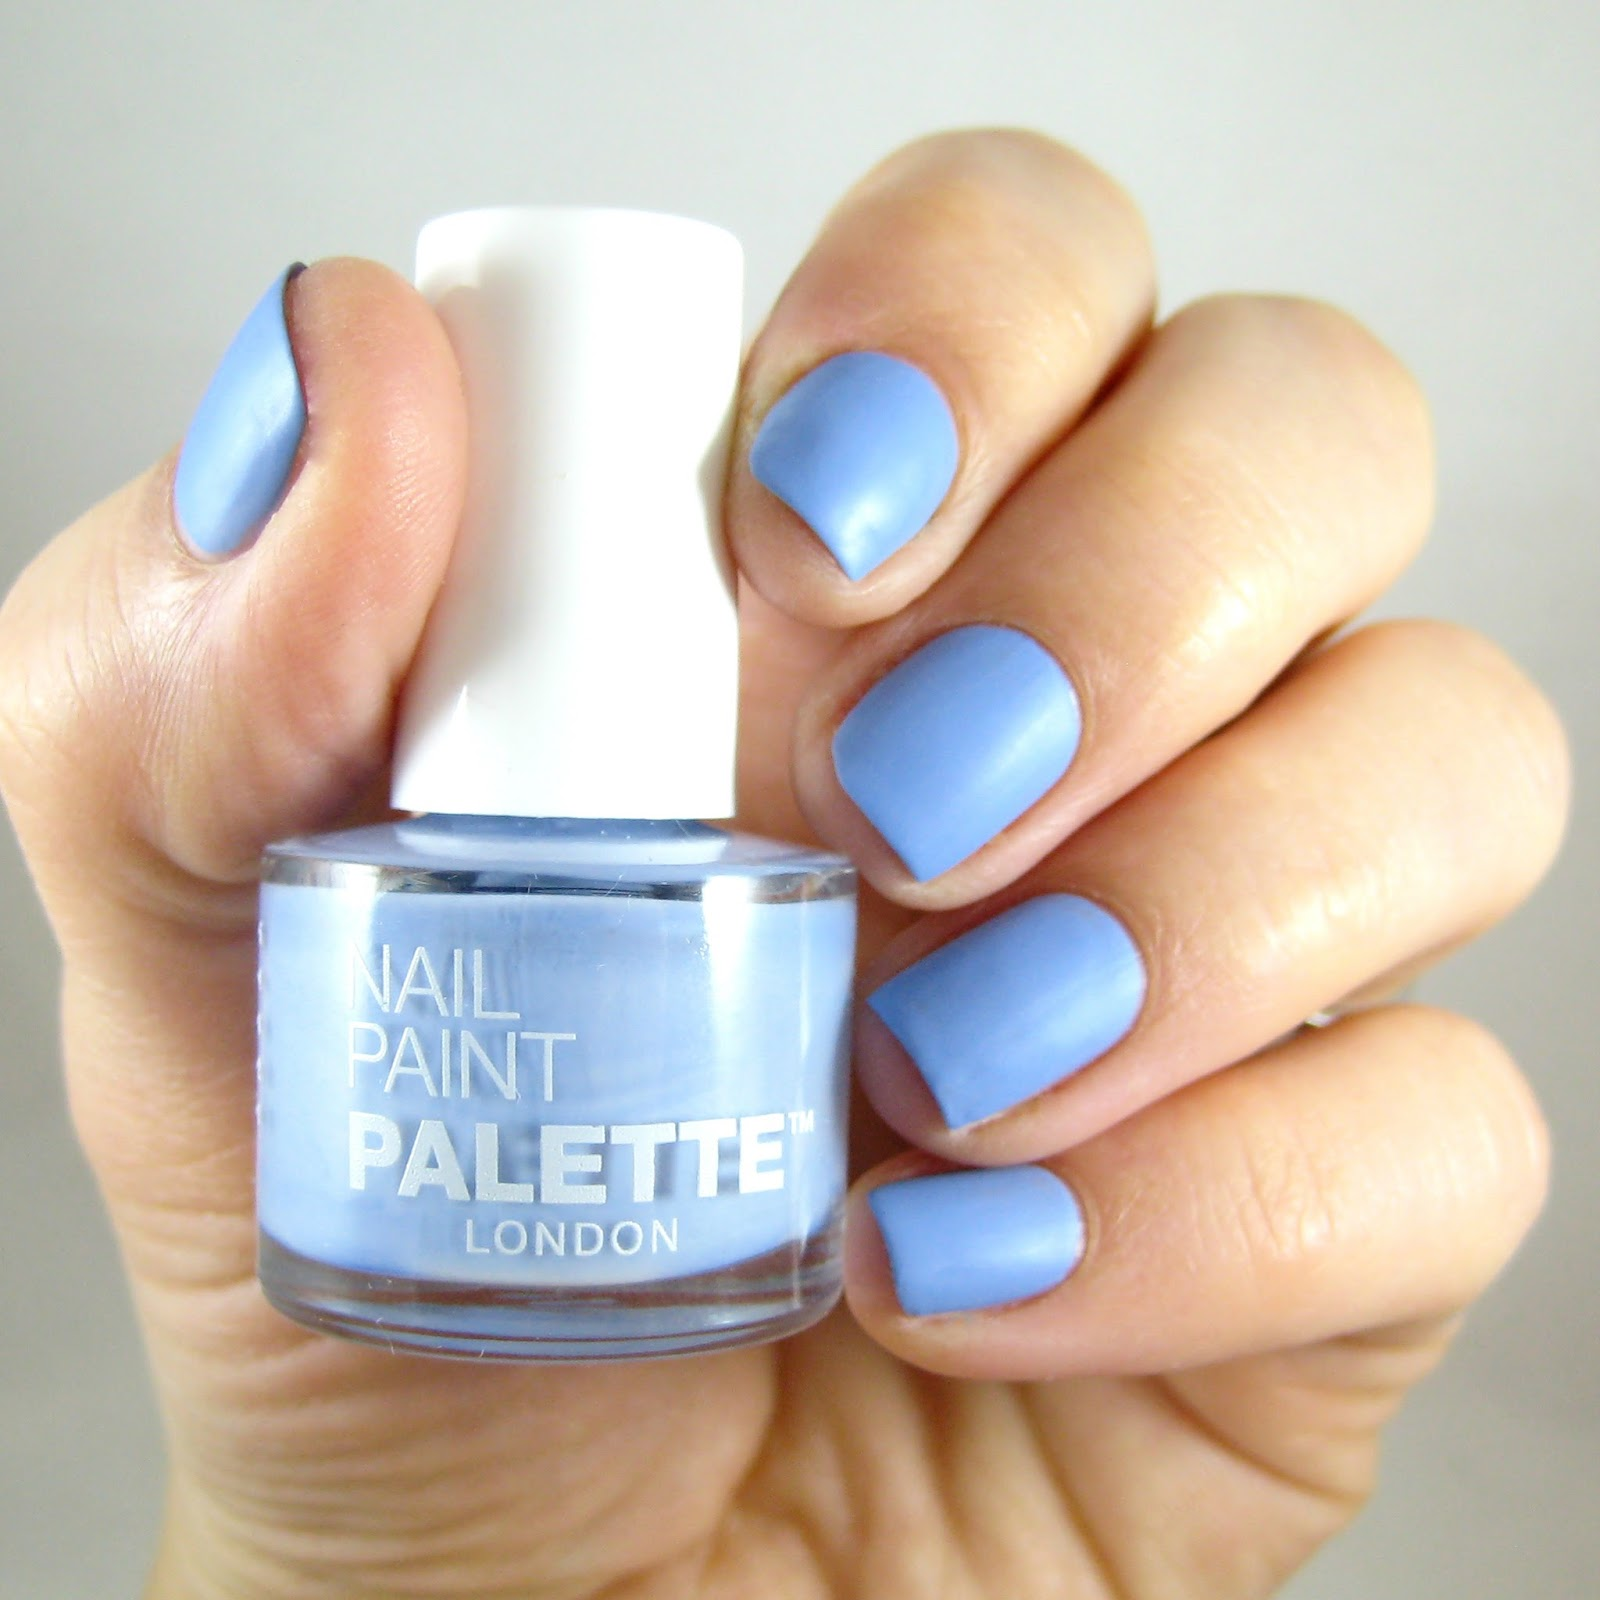 dahlia nails: create your own nail paint with palette london